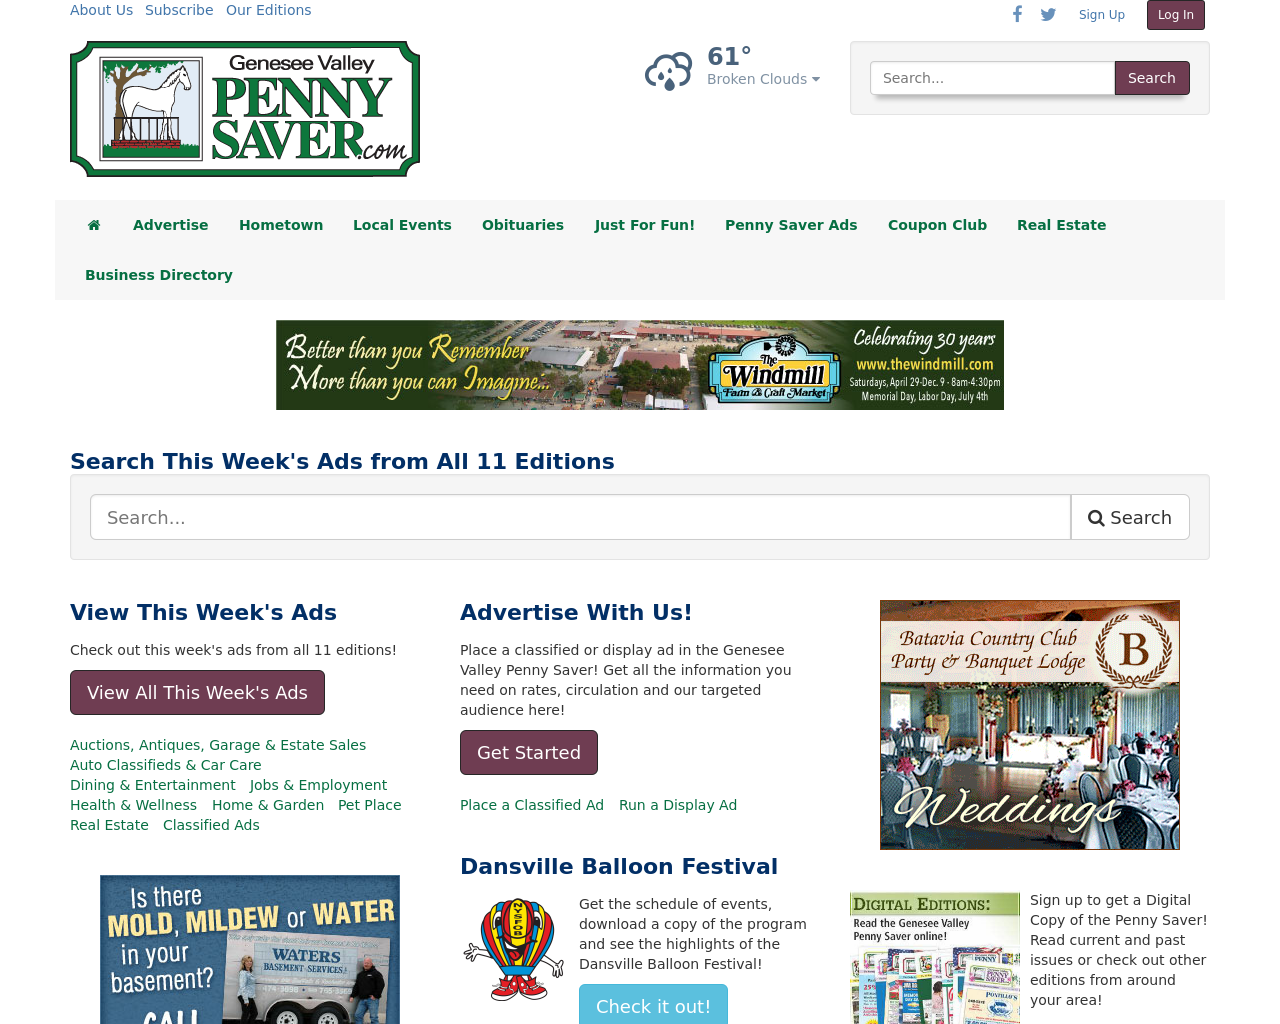 Genesee-Valley-Penny-Saver.com-Advertising-Reviews-Pricing